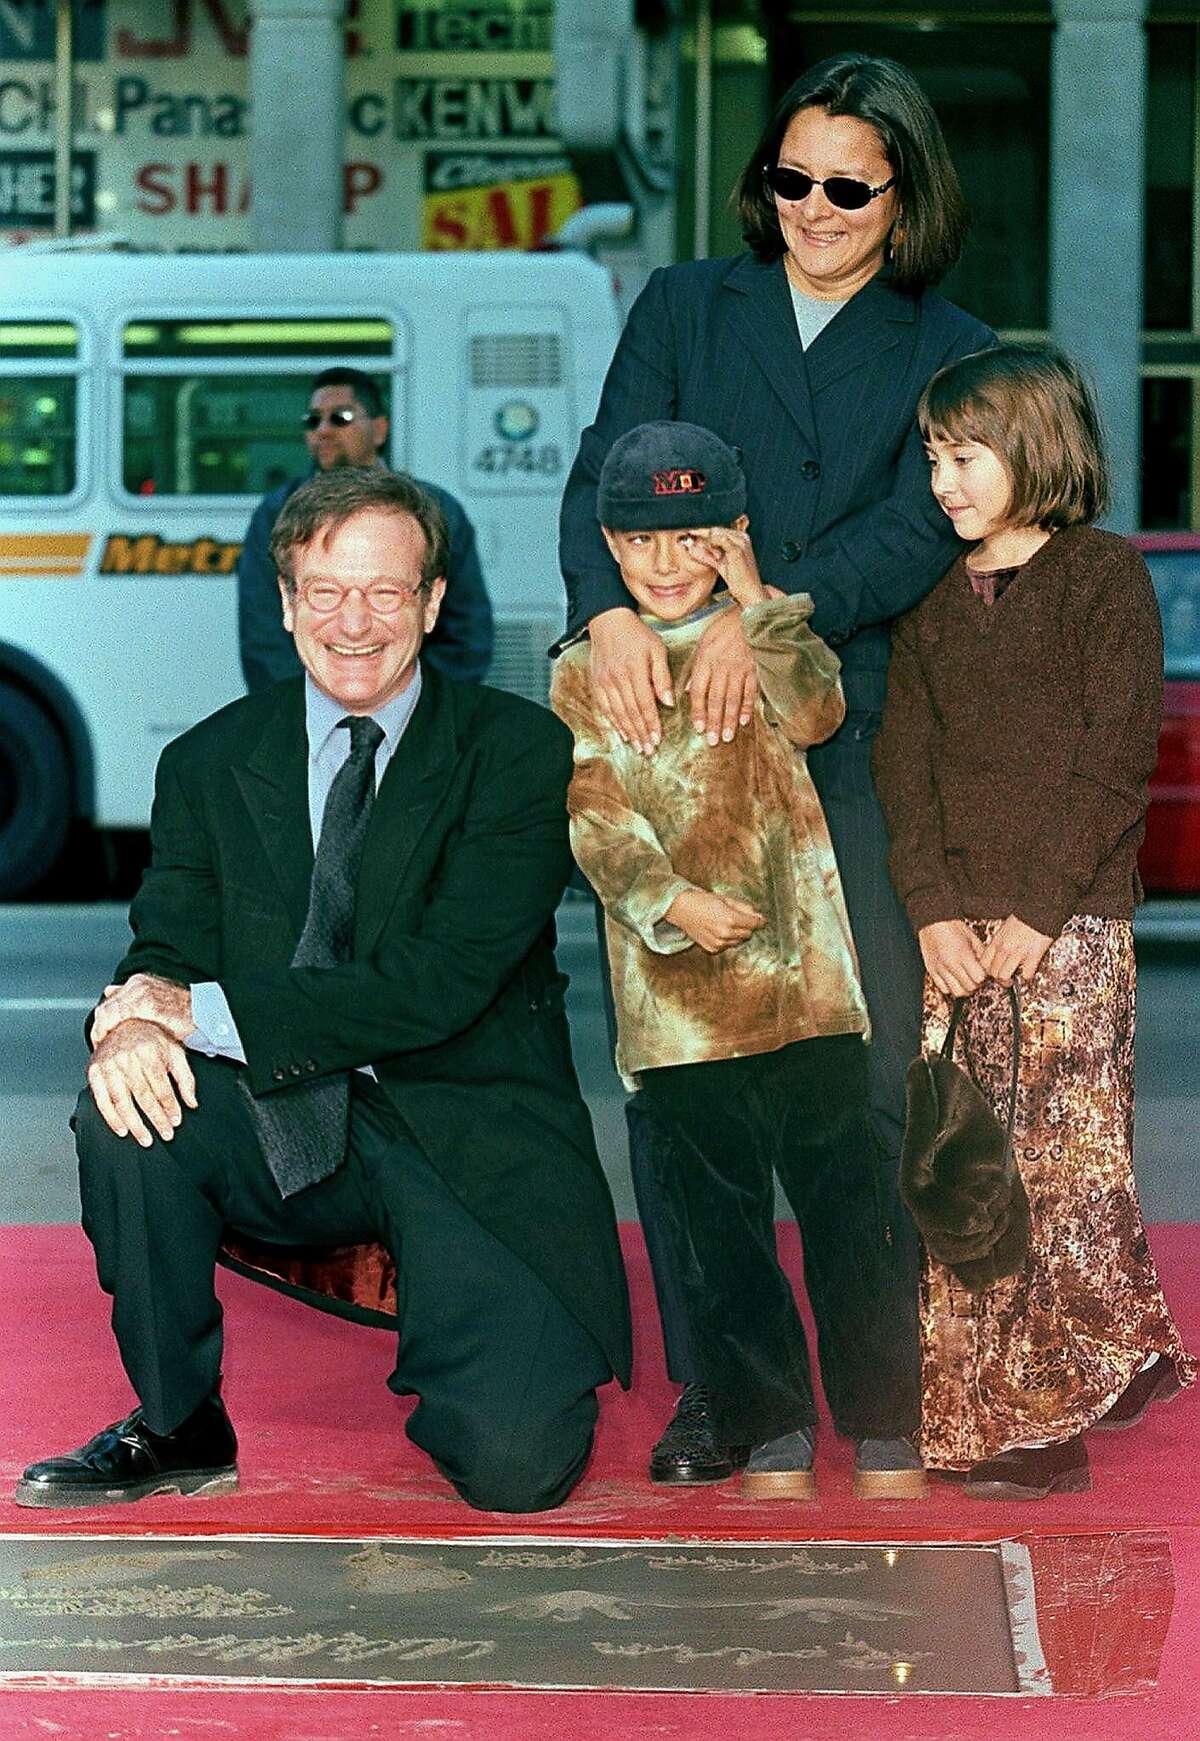 This file photo taken on December 22, 1998 shows US Academy Award-winning actor Robin Williams (left) posing with family members Cody (center), Zelda (right) and wife Marsha (back right) during Williams' hand and footprint ceremony outside the Mann's Chinese Theatre in Hollywood, California. Oscar-winning actor and comedian Robin Williams died on August 11, 2014 after battling depression, triggering an outpouring of tributes to one of the most beloved entertainers of his generation.